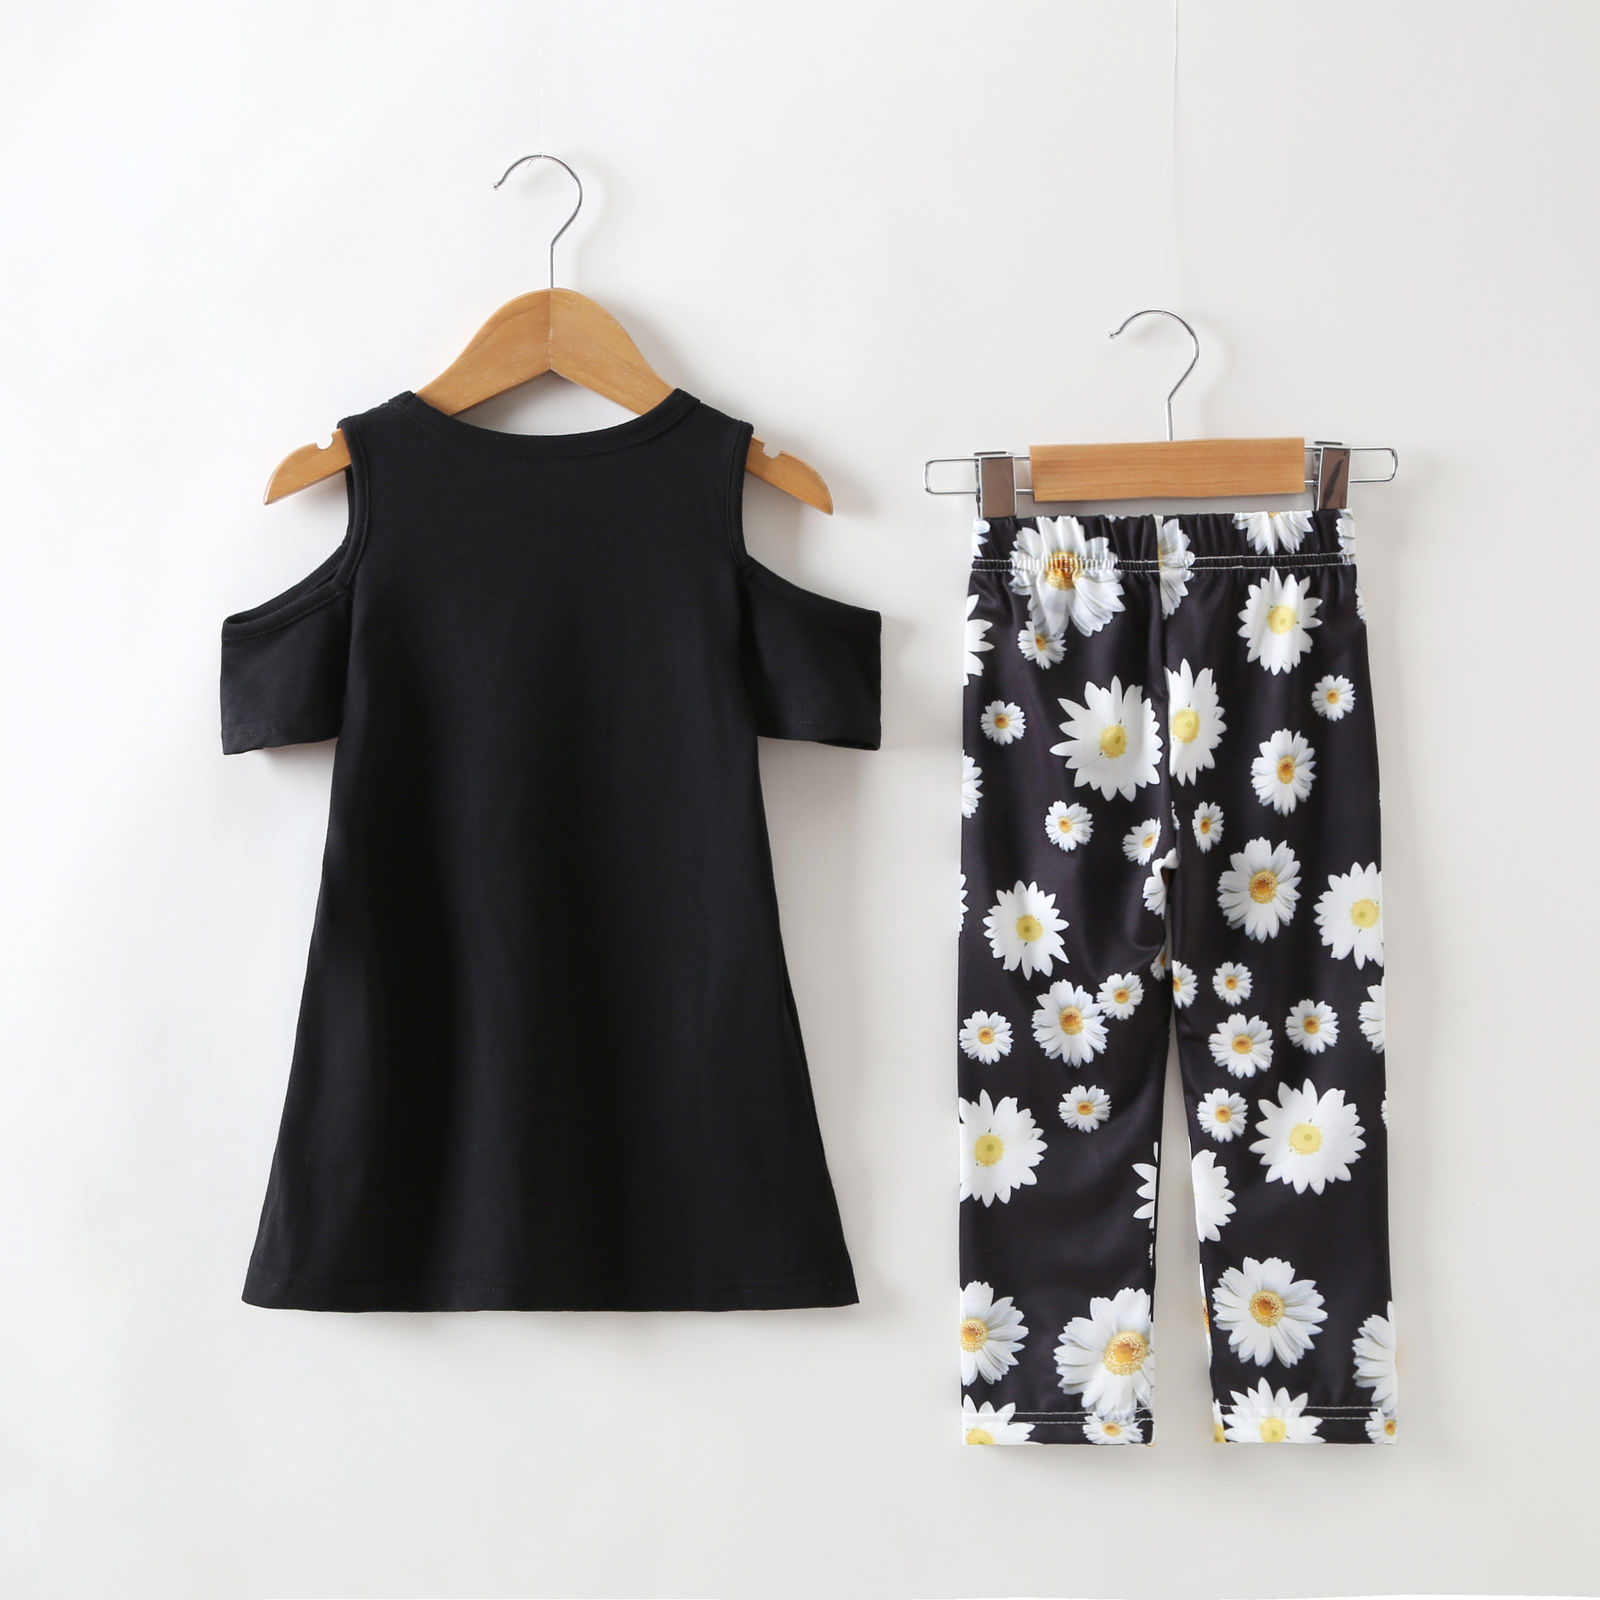 Family Mother Daughter Dress 2018 Family Clothing Cold Shoulder T-Shirt Cotton Floral printed Family Matching Outfits Sets